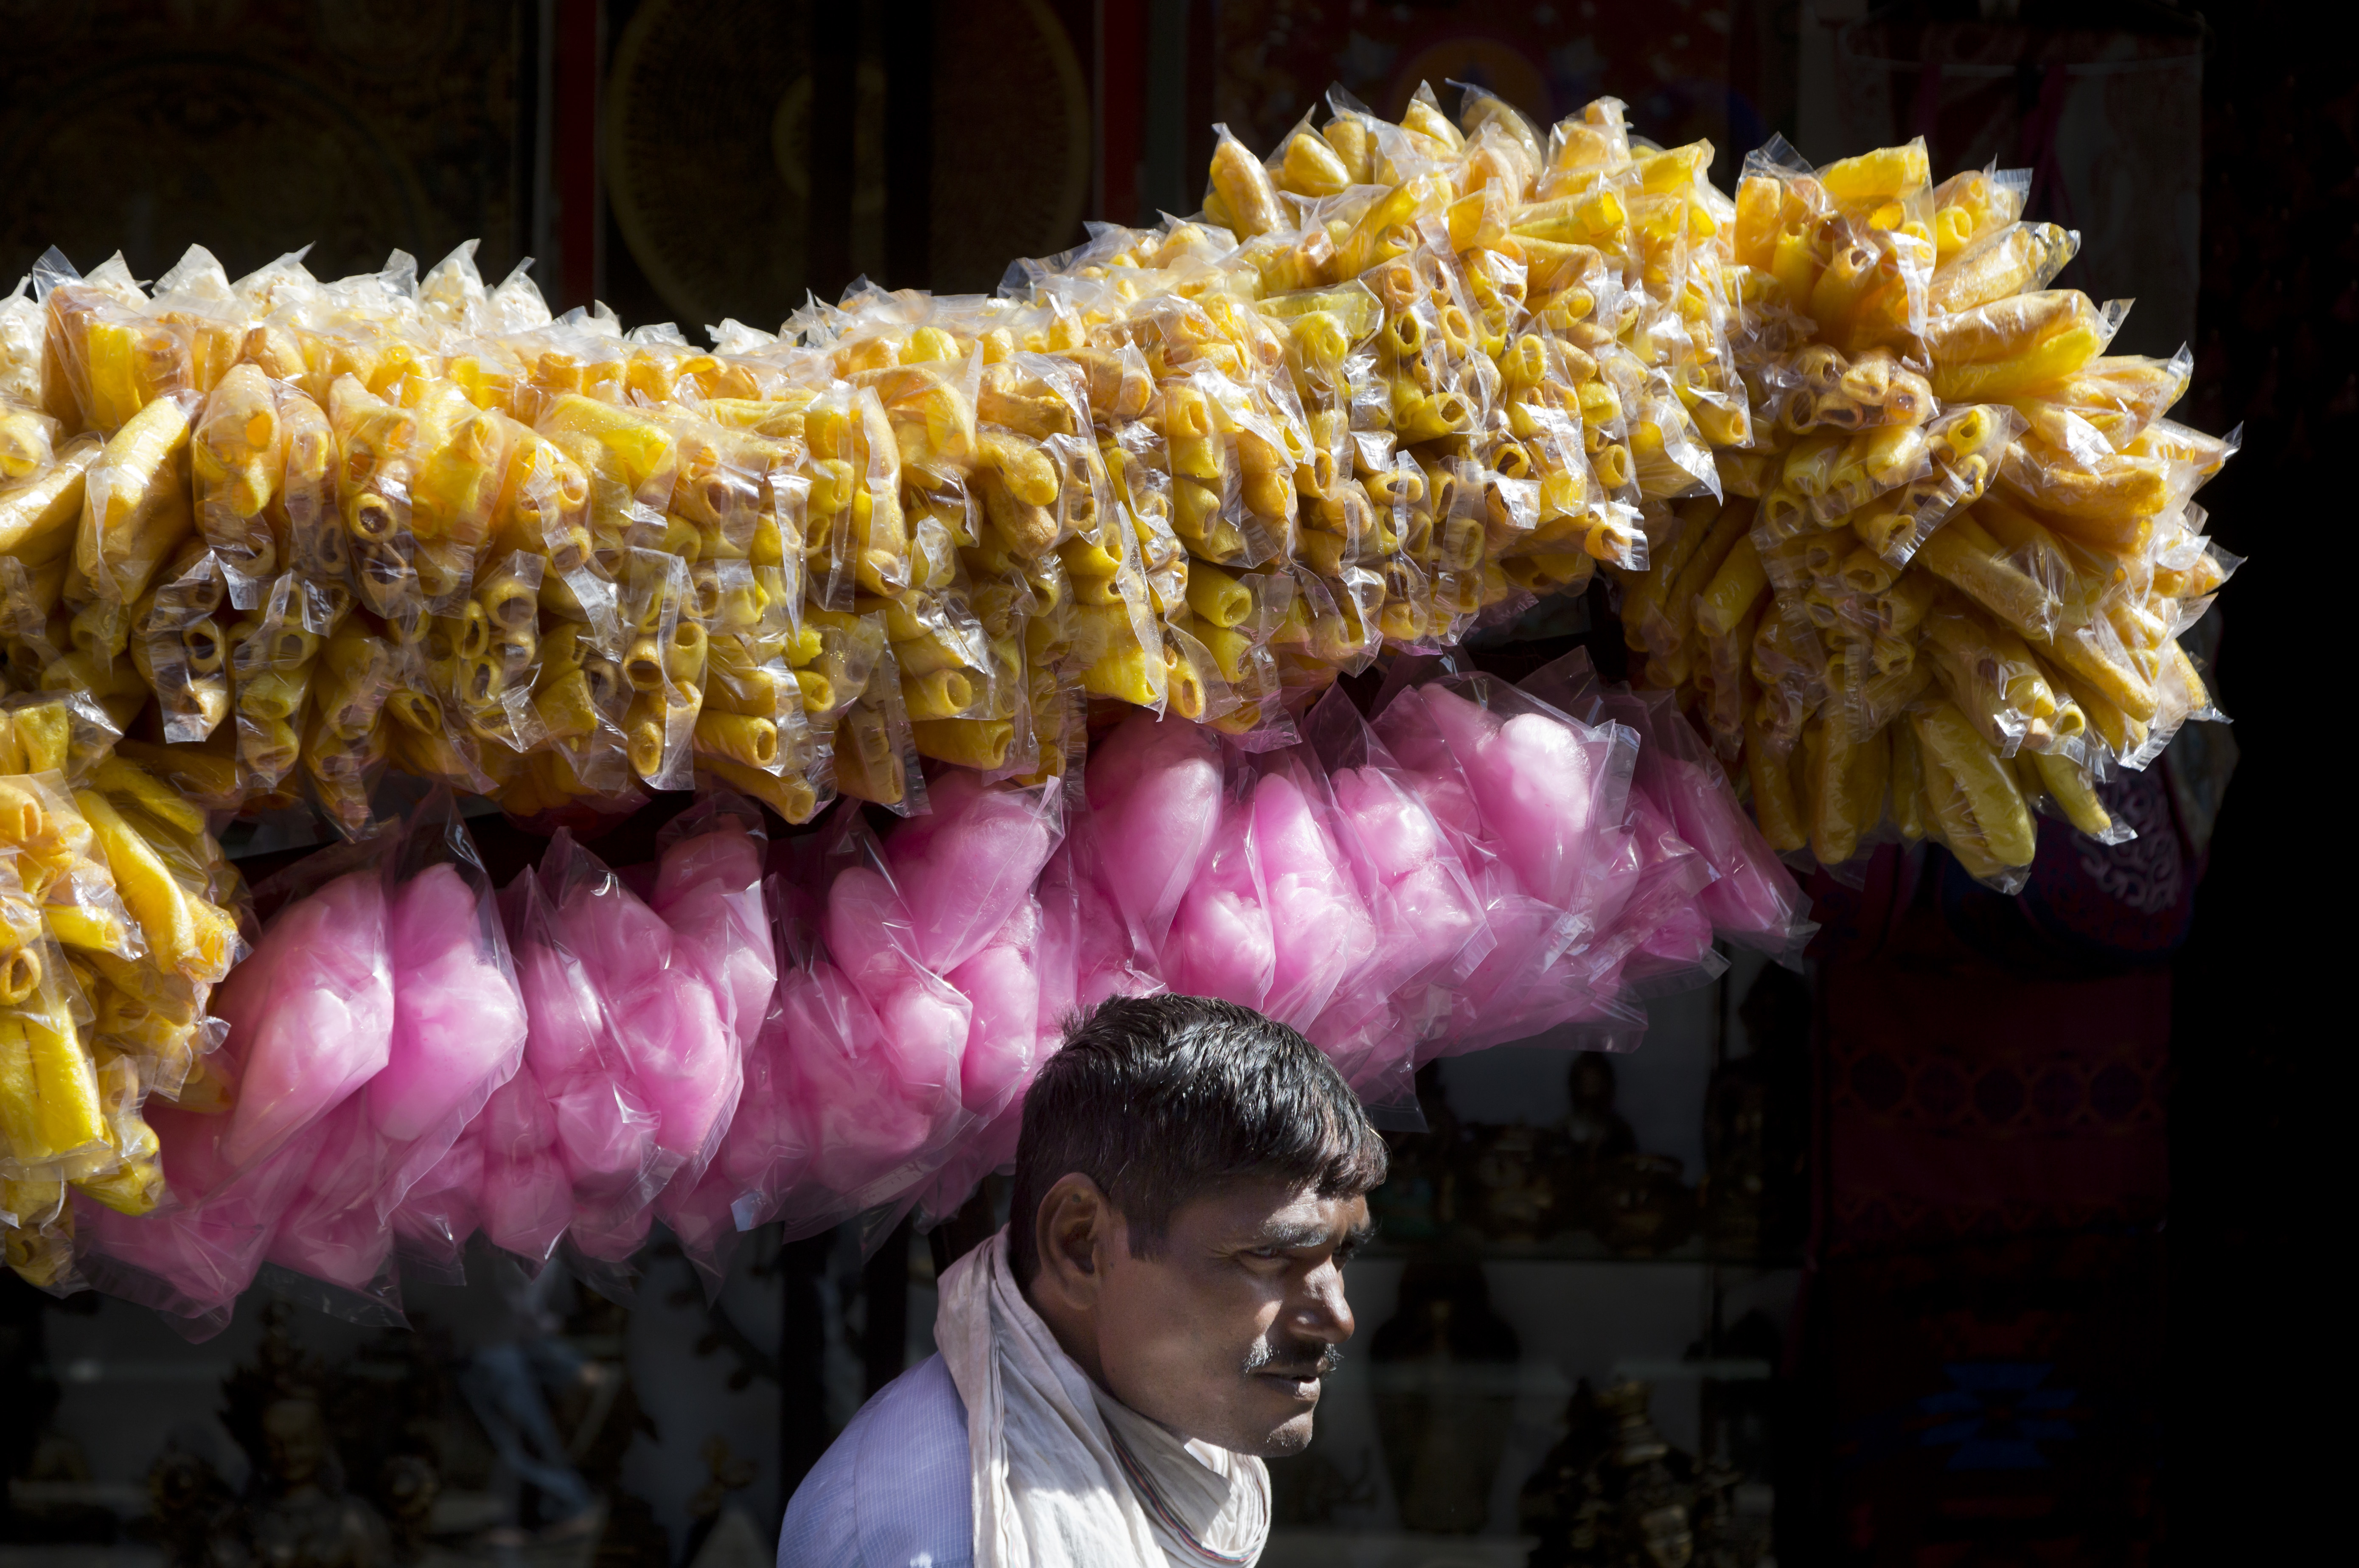 A vendor sells crips and candy floss in Dharmsala - AP